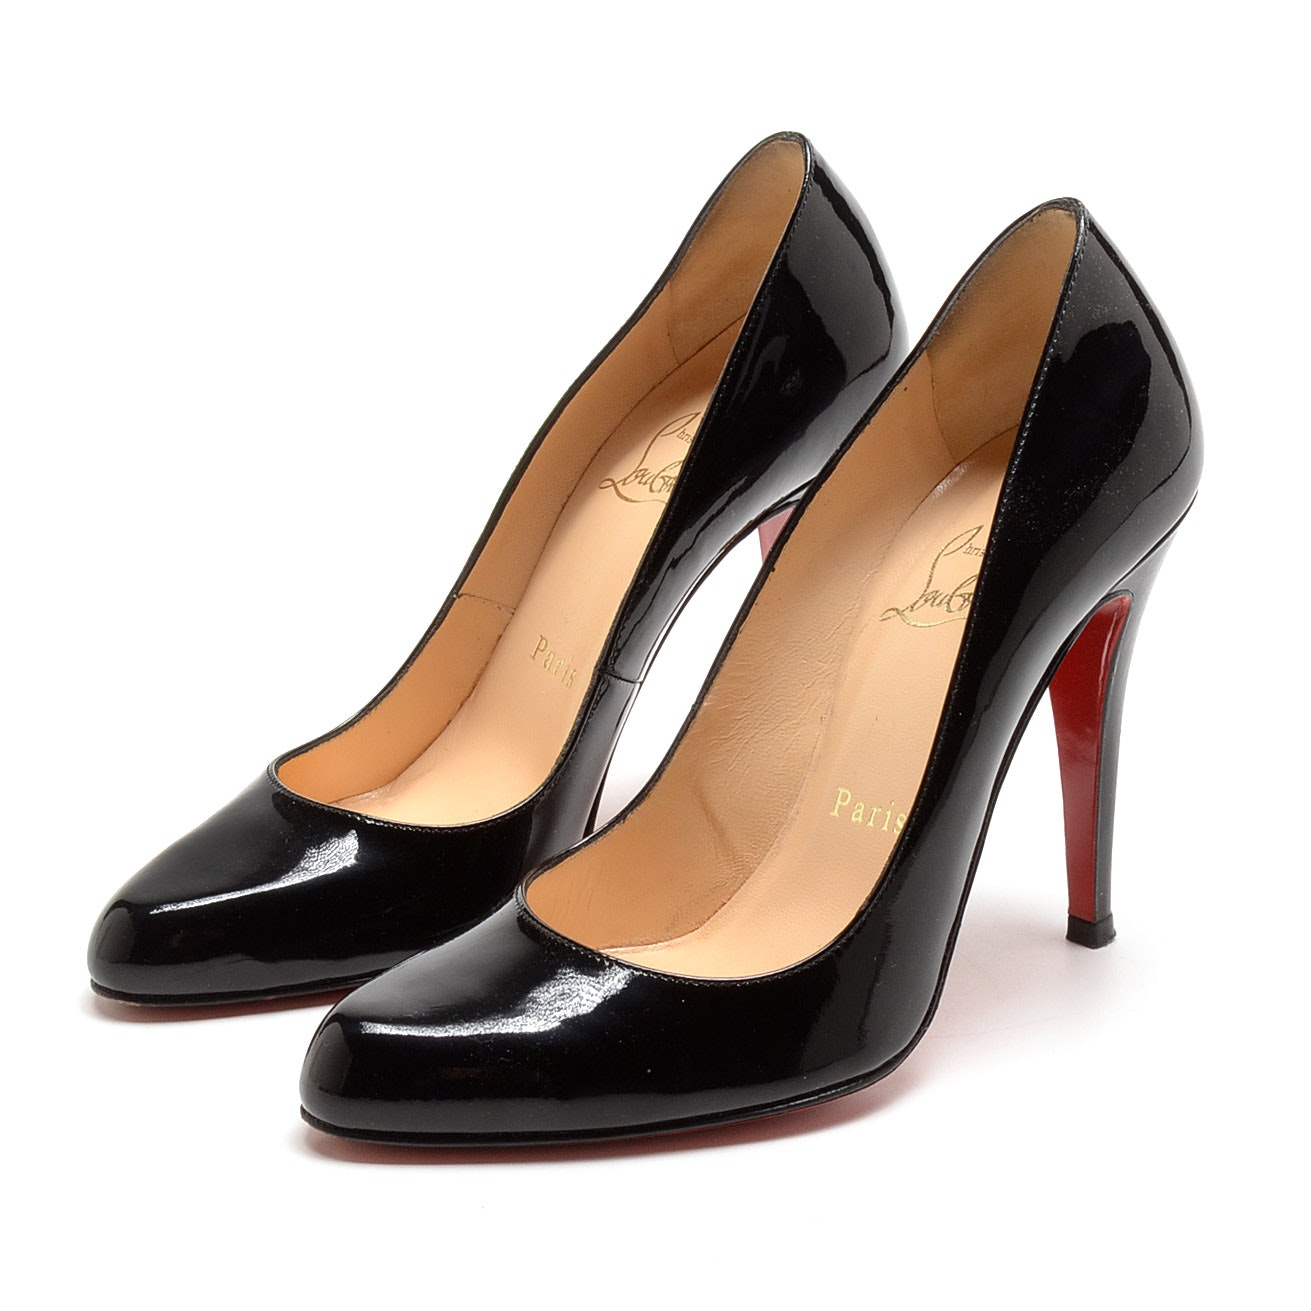 Christian Louboutin of Paris Black Patent Leather Stiletto Dress Pumps